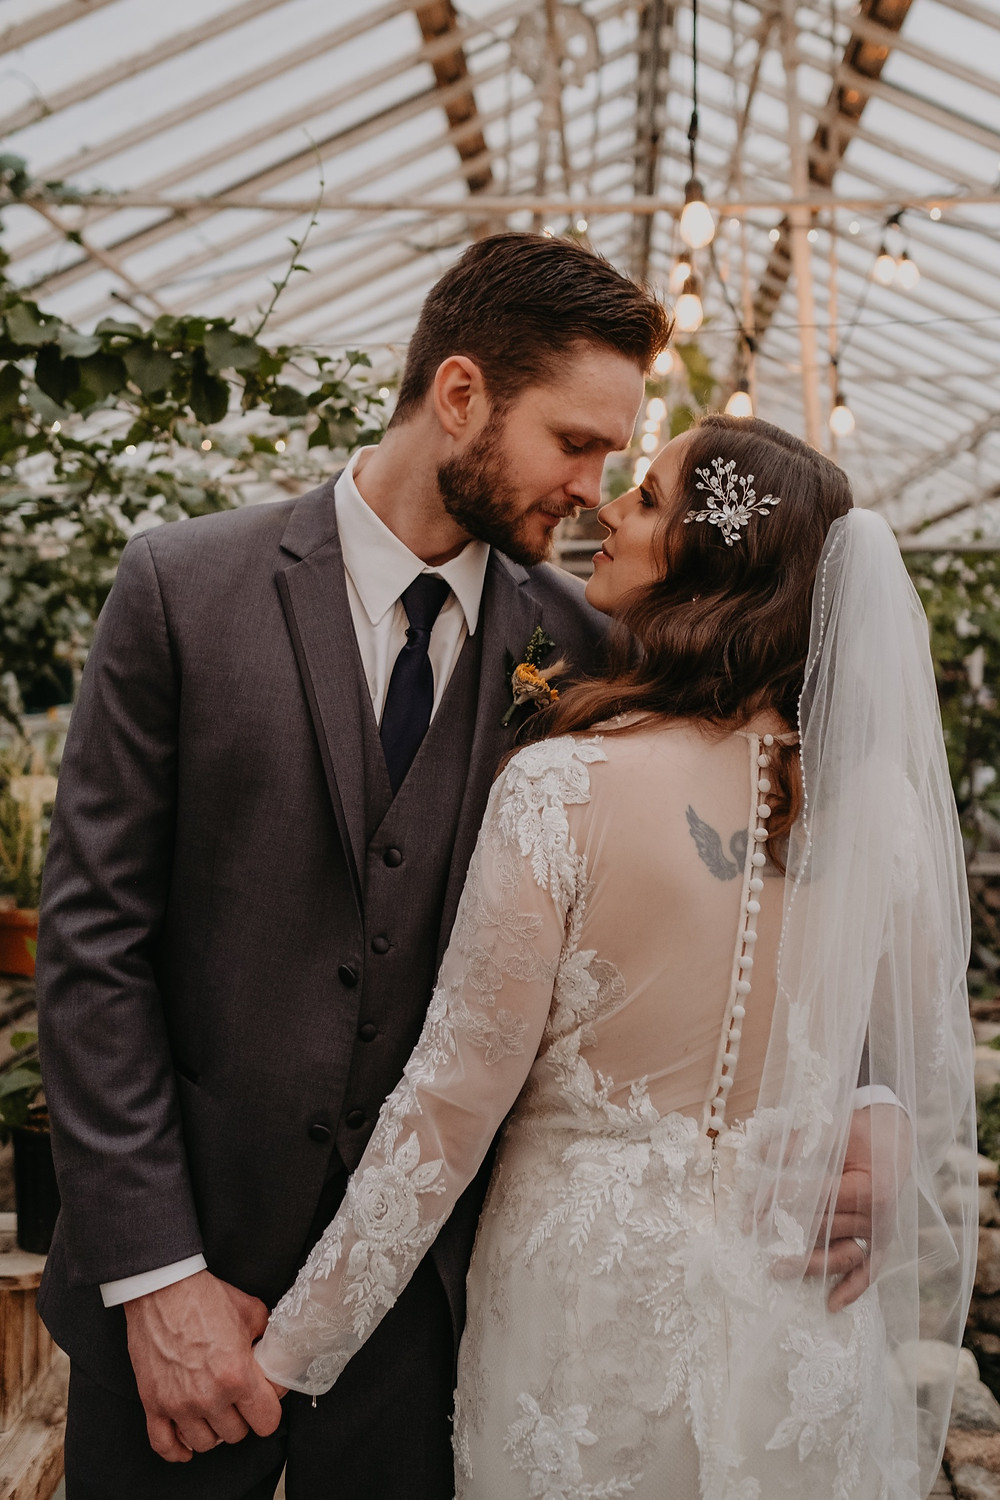 Candid lifestyle wedding photography. Photographed by Nicole Leanne Photography.